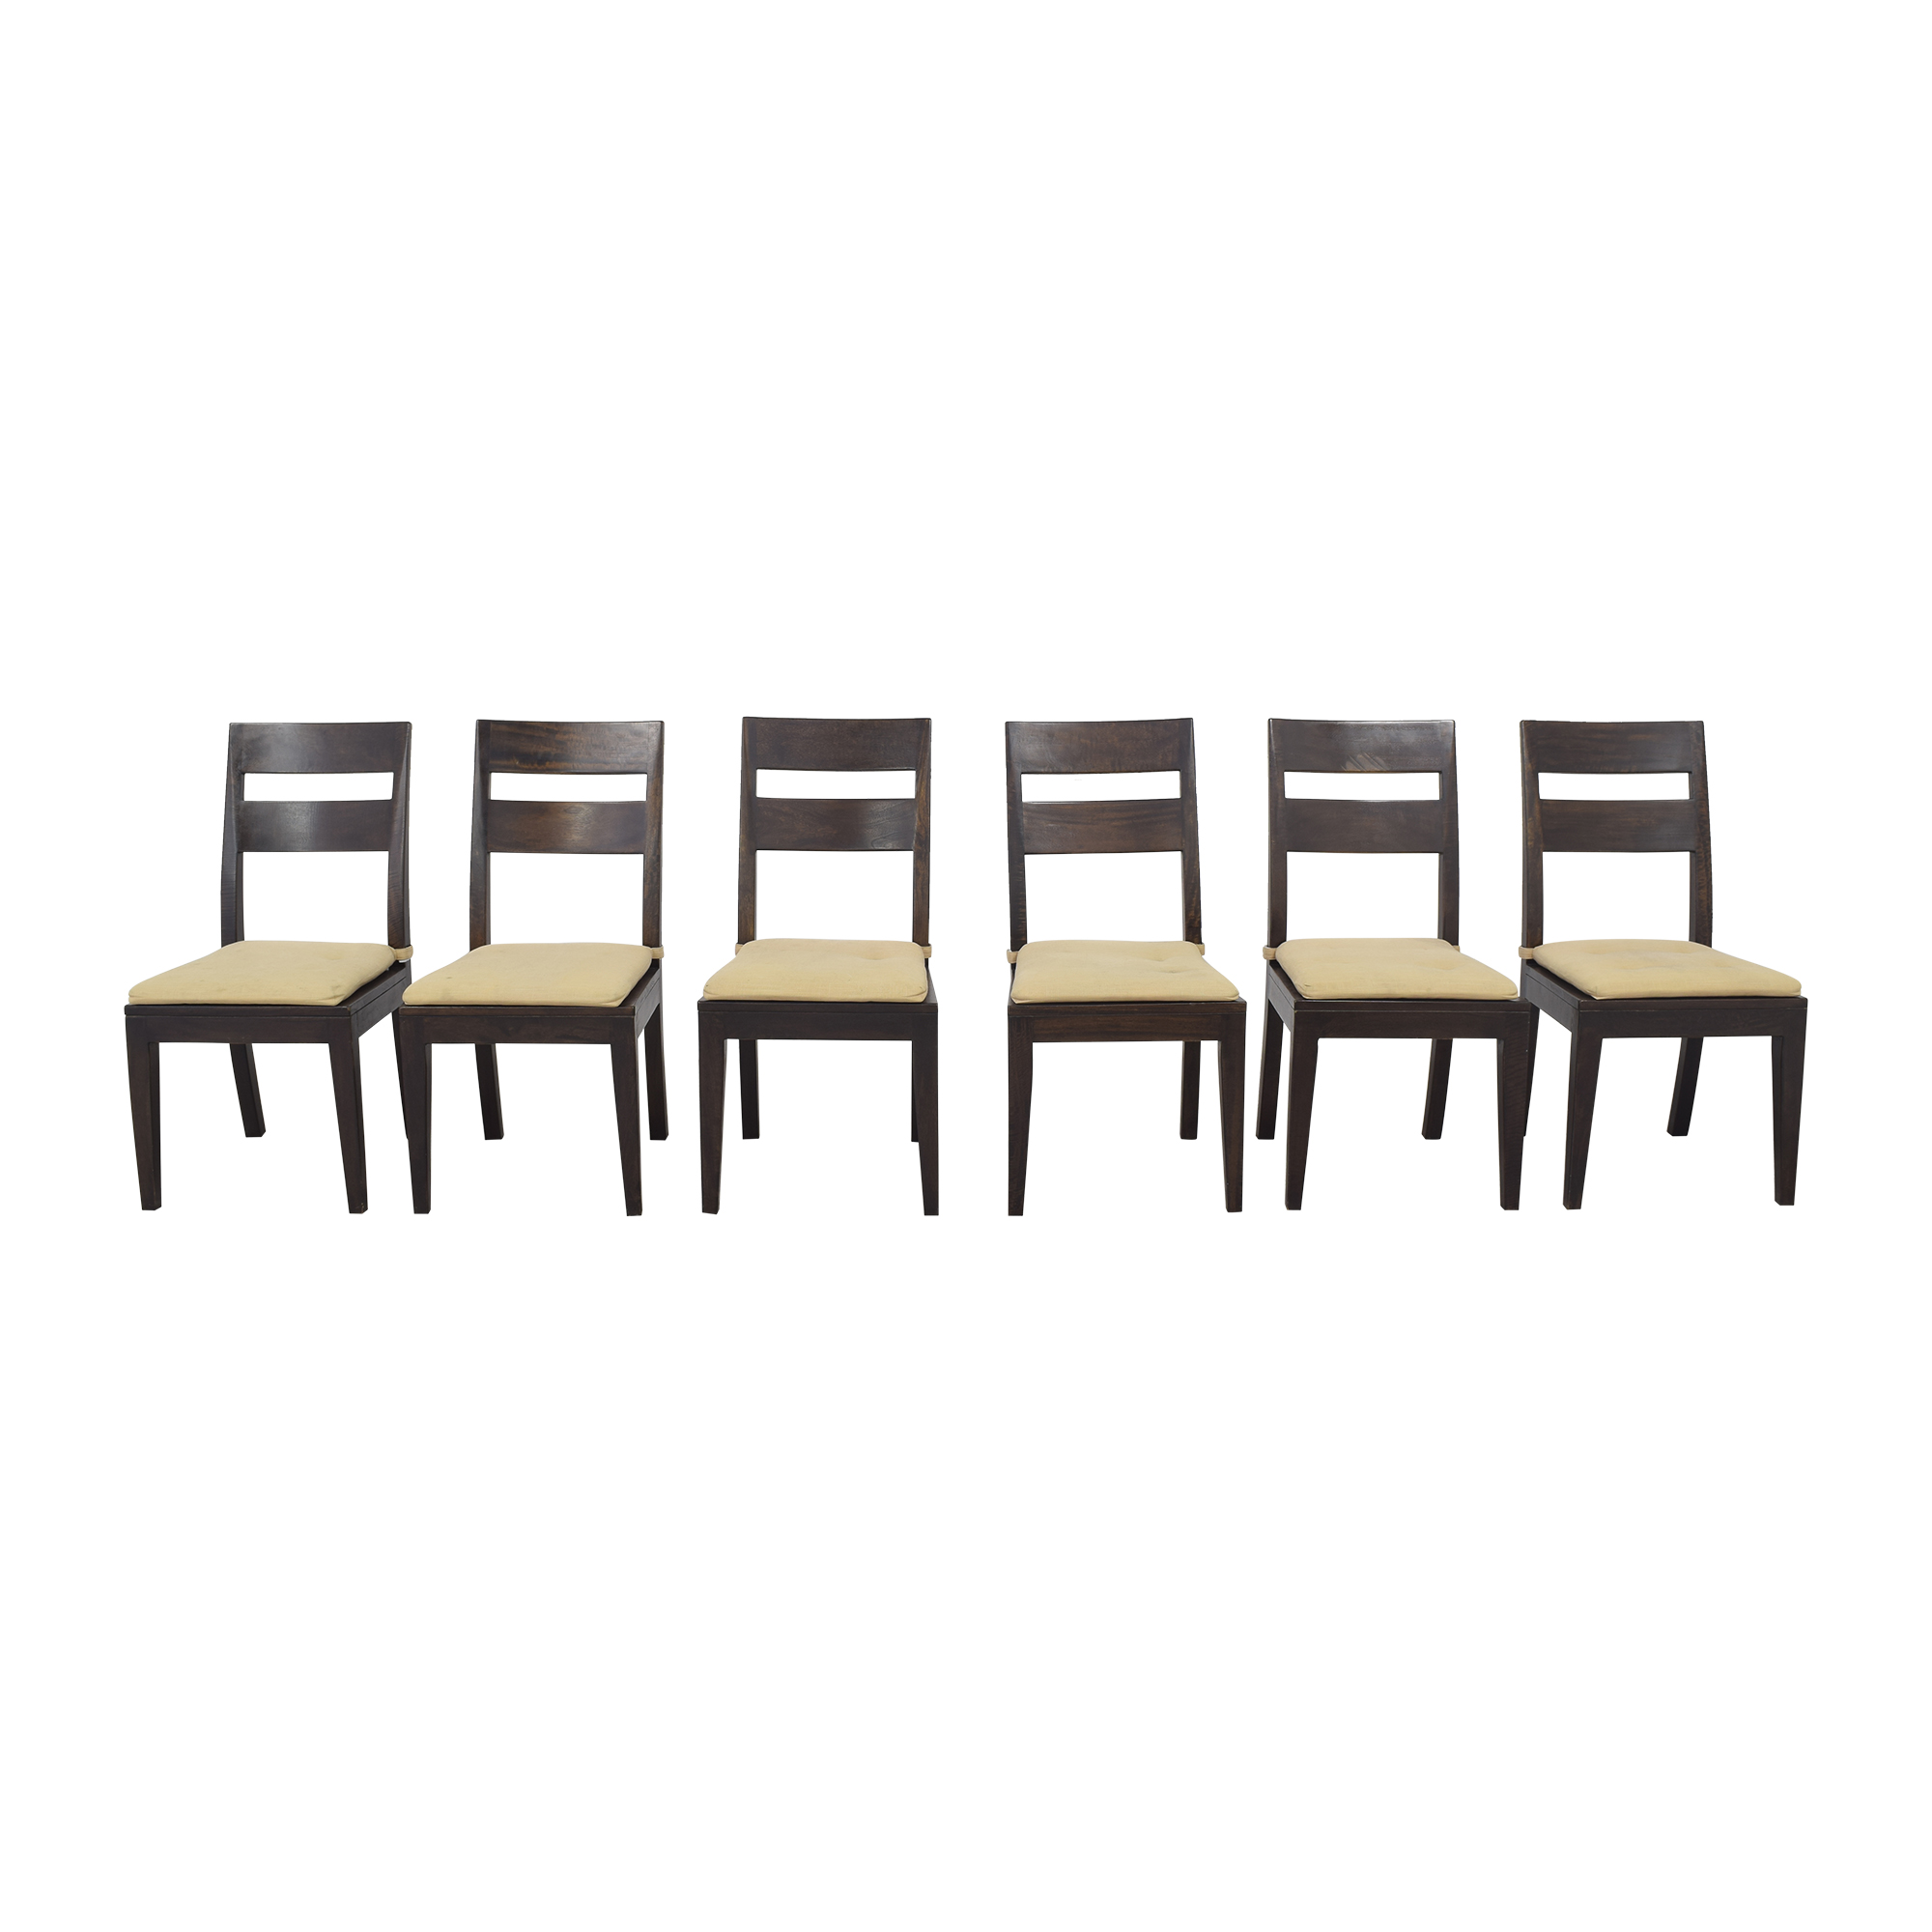 Crate & Barrel Crate & Barrel Basque Dining Chairs with Cushions nyc